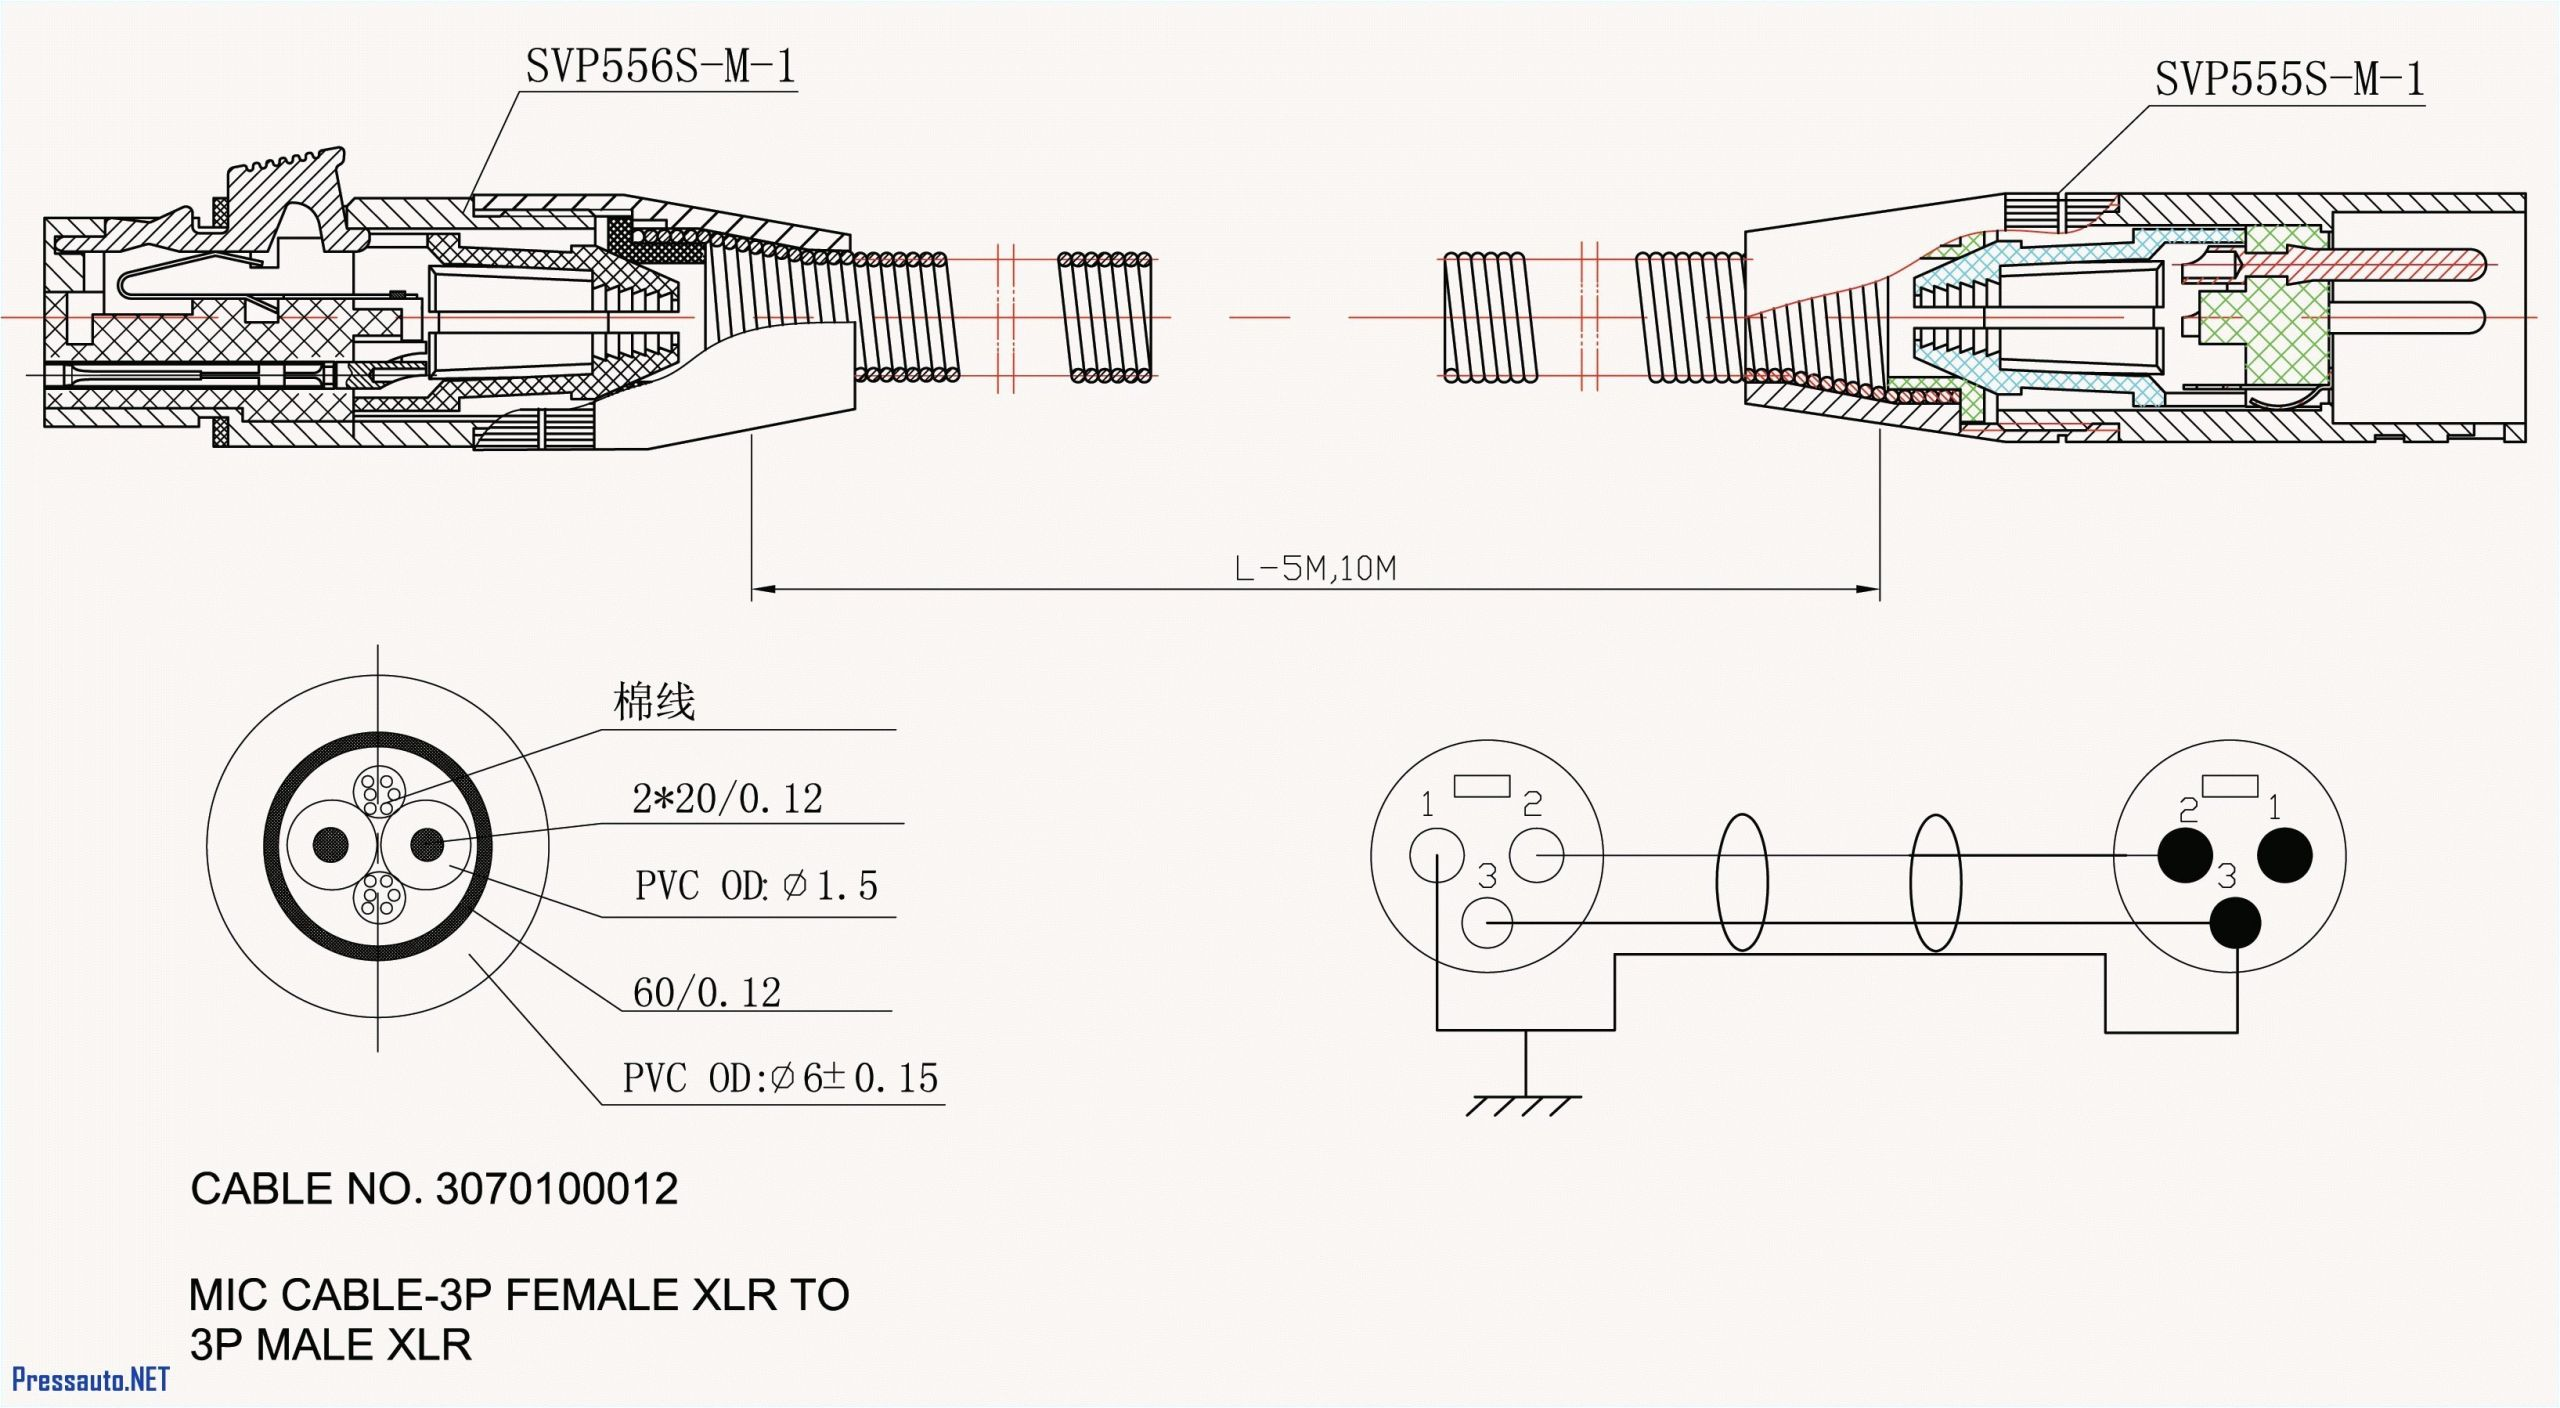 wiring diagram for series 3 land rover new electrical alternator inspirationa of png